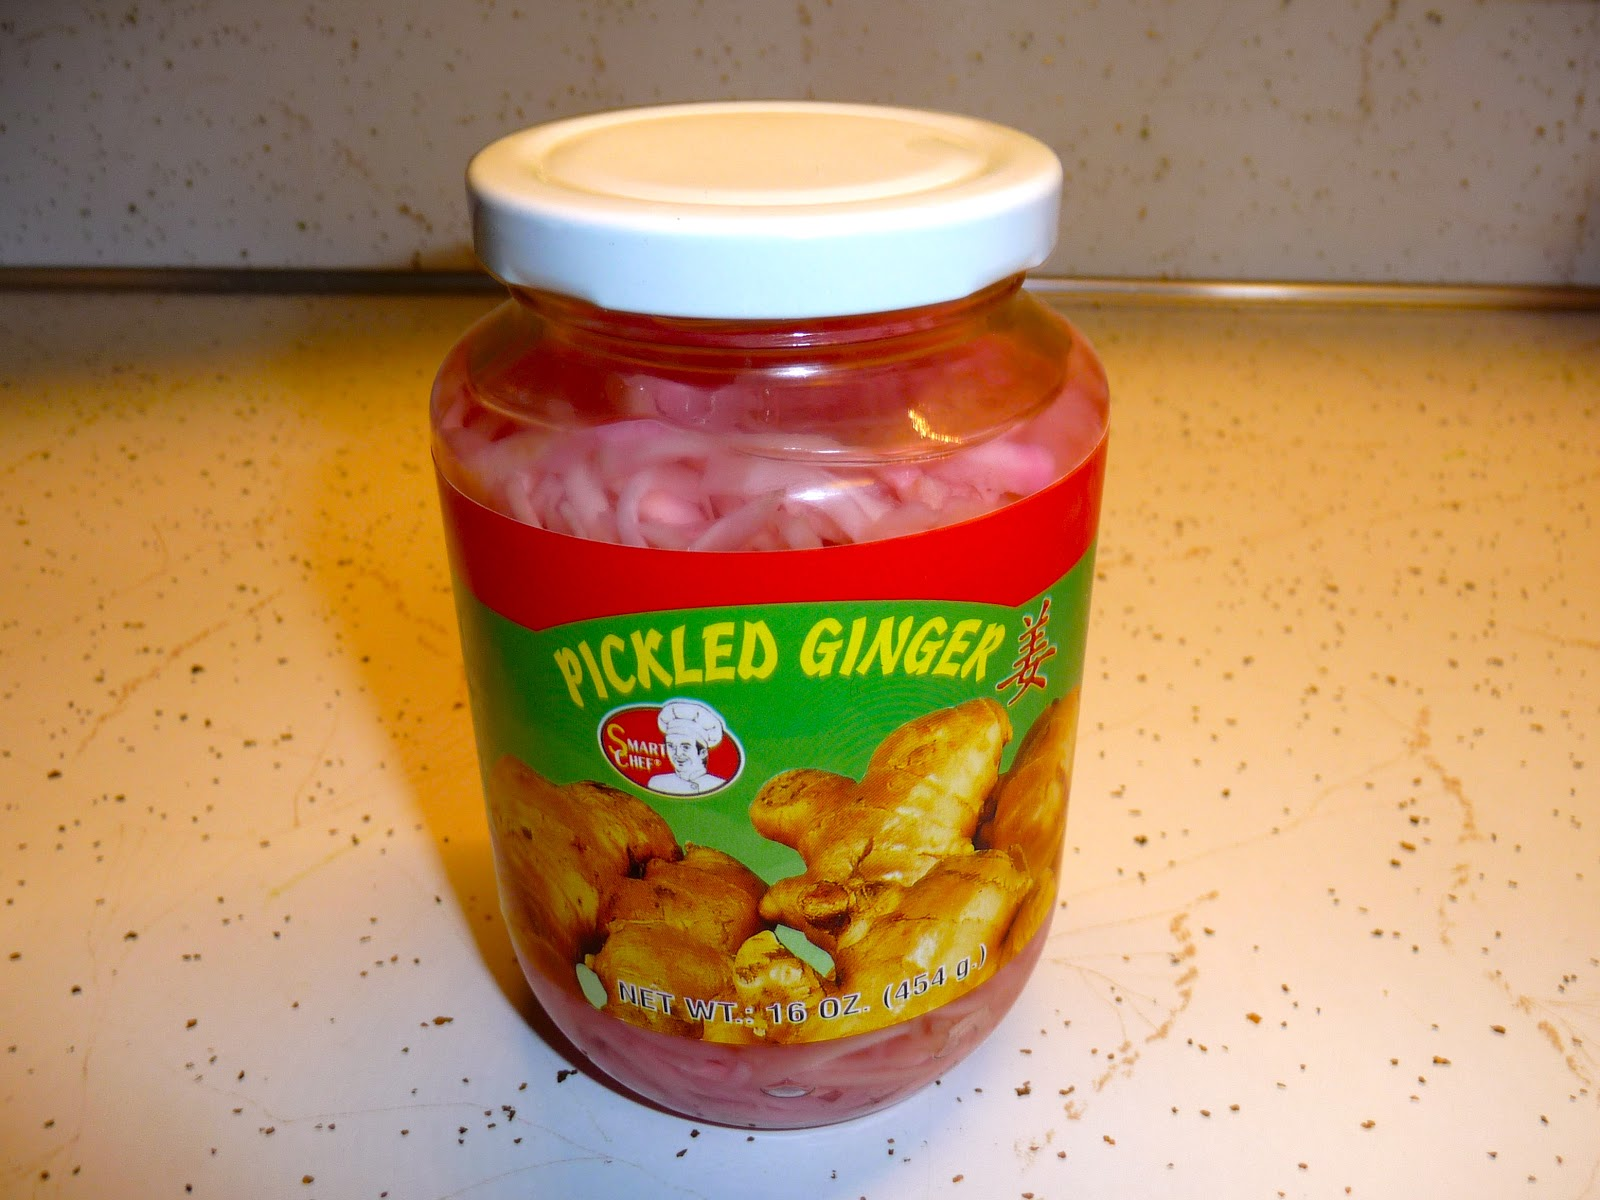 "Along with five-spice powder and a good-quality soy sauce, pickled ginger is another must-have ""secret ingredient"" that makes your home-cooking taste more like what you'd get from a real Asian restaurant. A little goes a long way!"